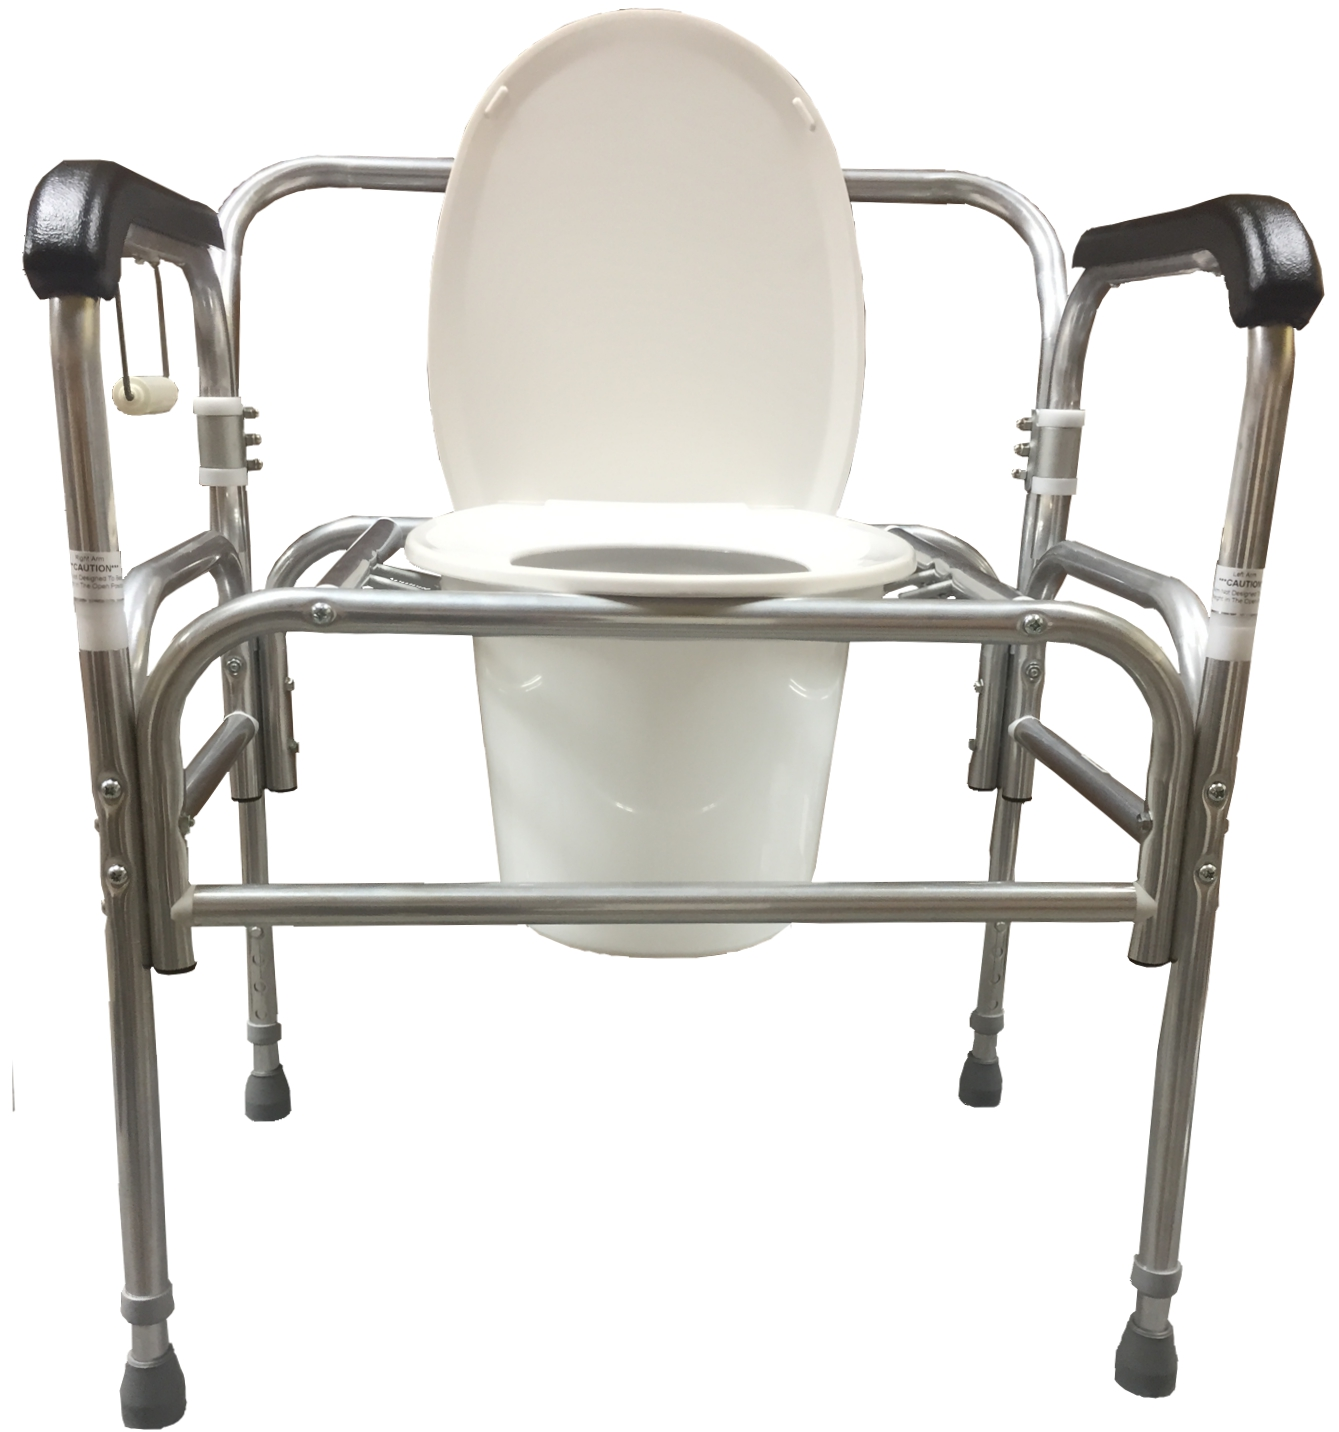 Bedside Commode Chair Model 724dau A Bariatric Droparm Bedside Commode With Adjustable Seat Height